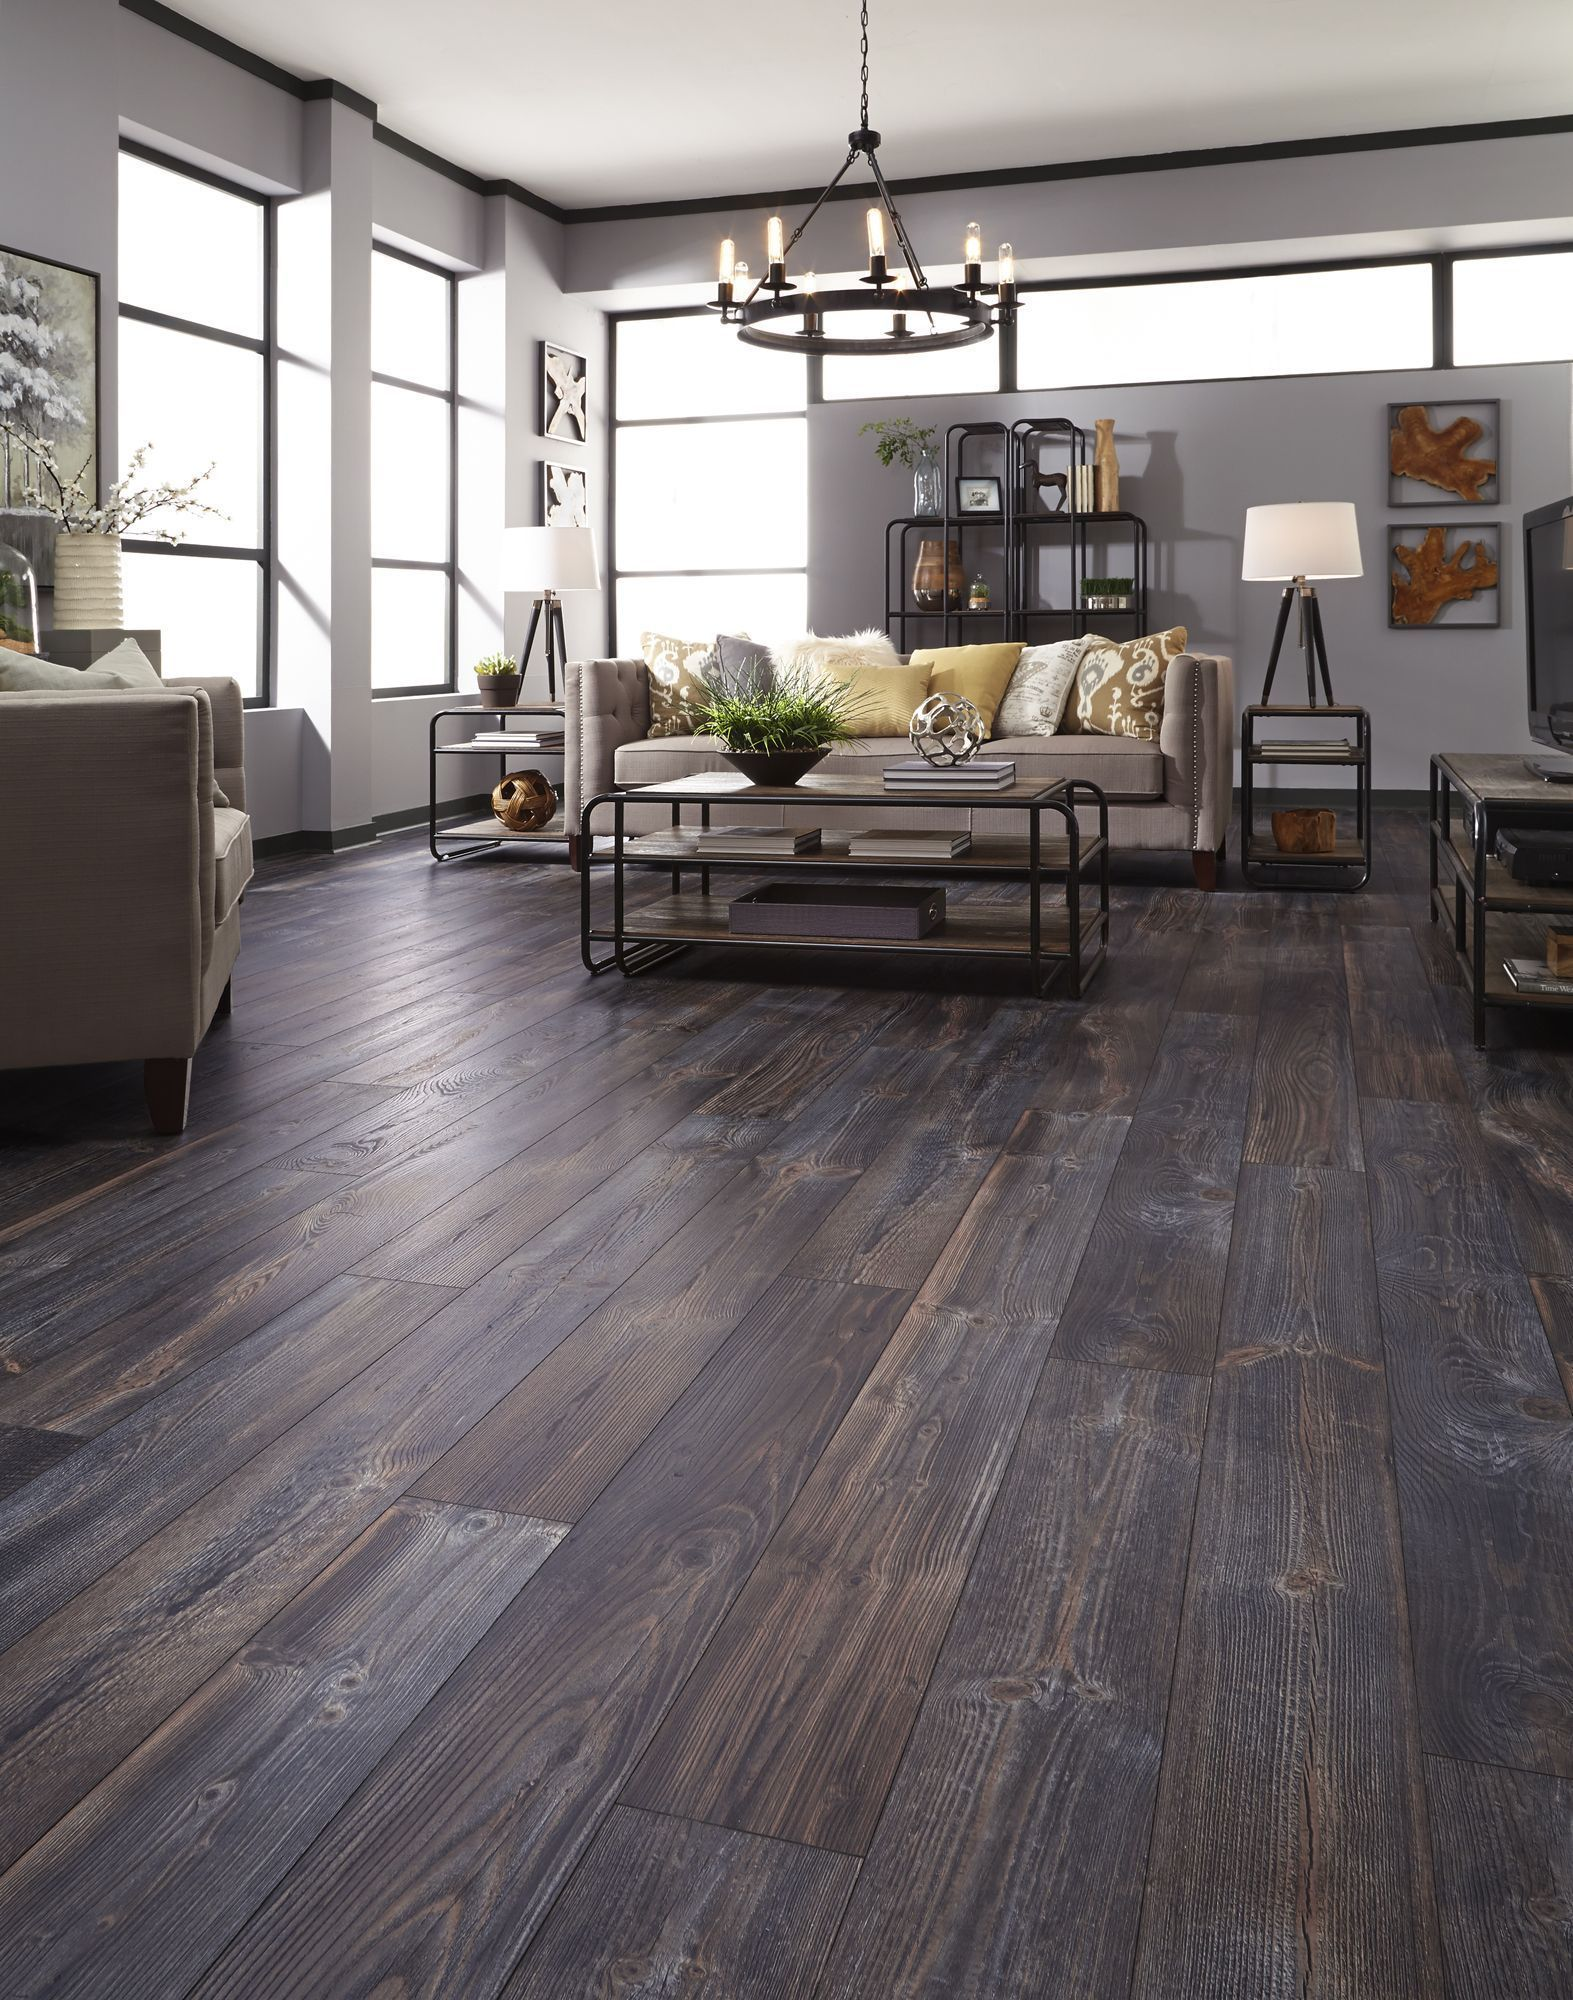 Hardwood Floors Colors Oak 40 Decoratoo Hardwood Floor Colors Floor Colors Hardwood Floors